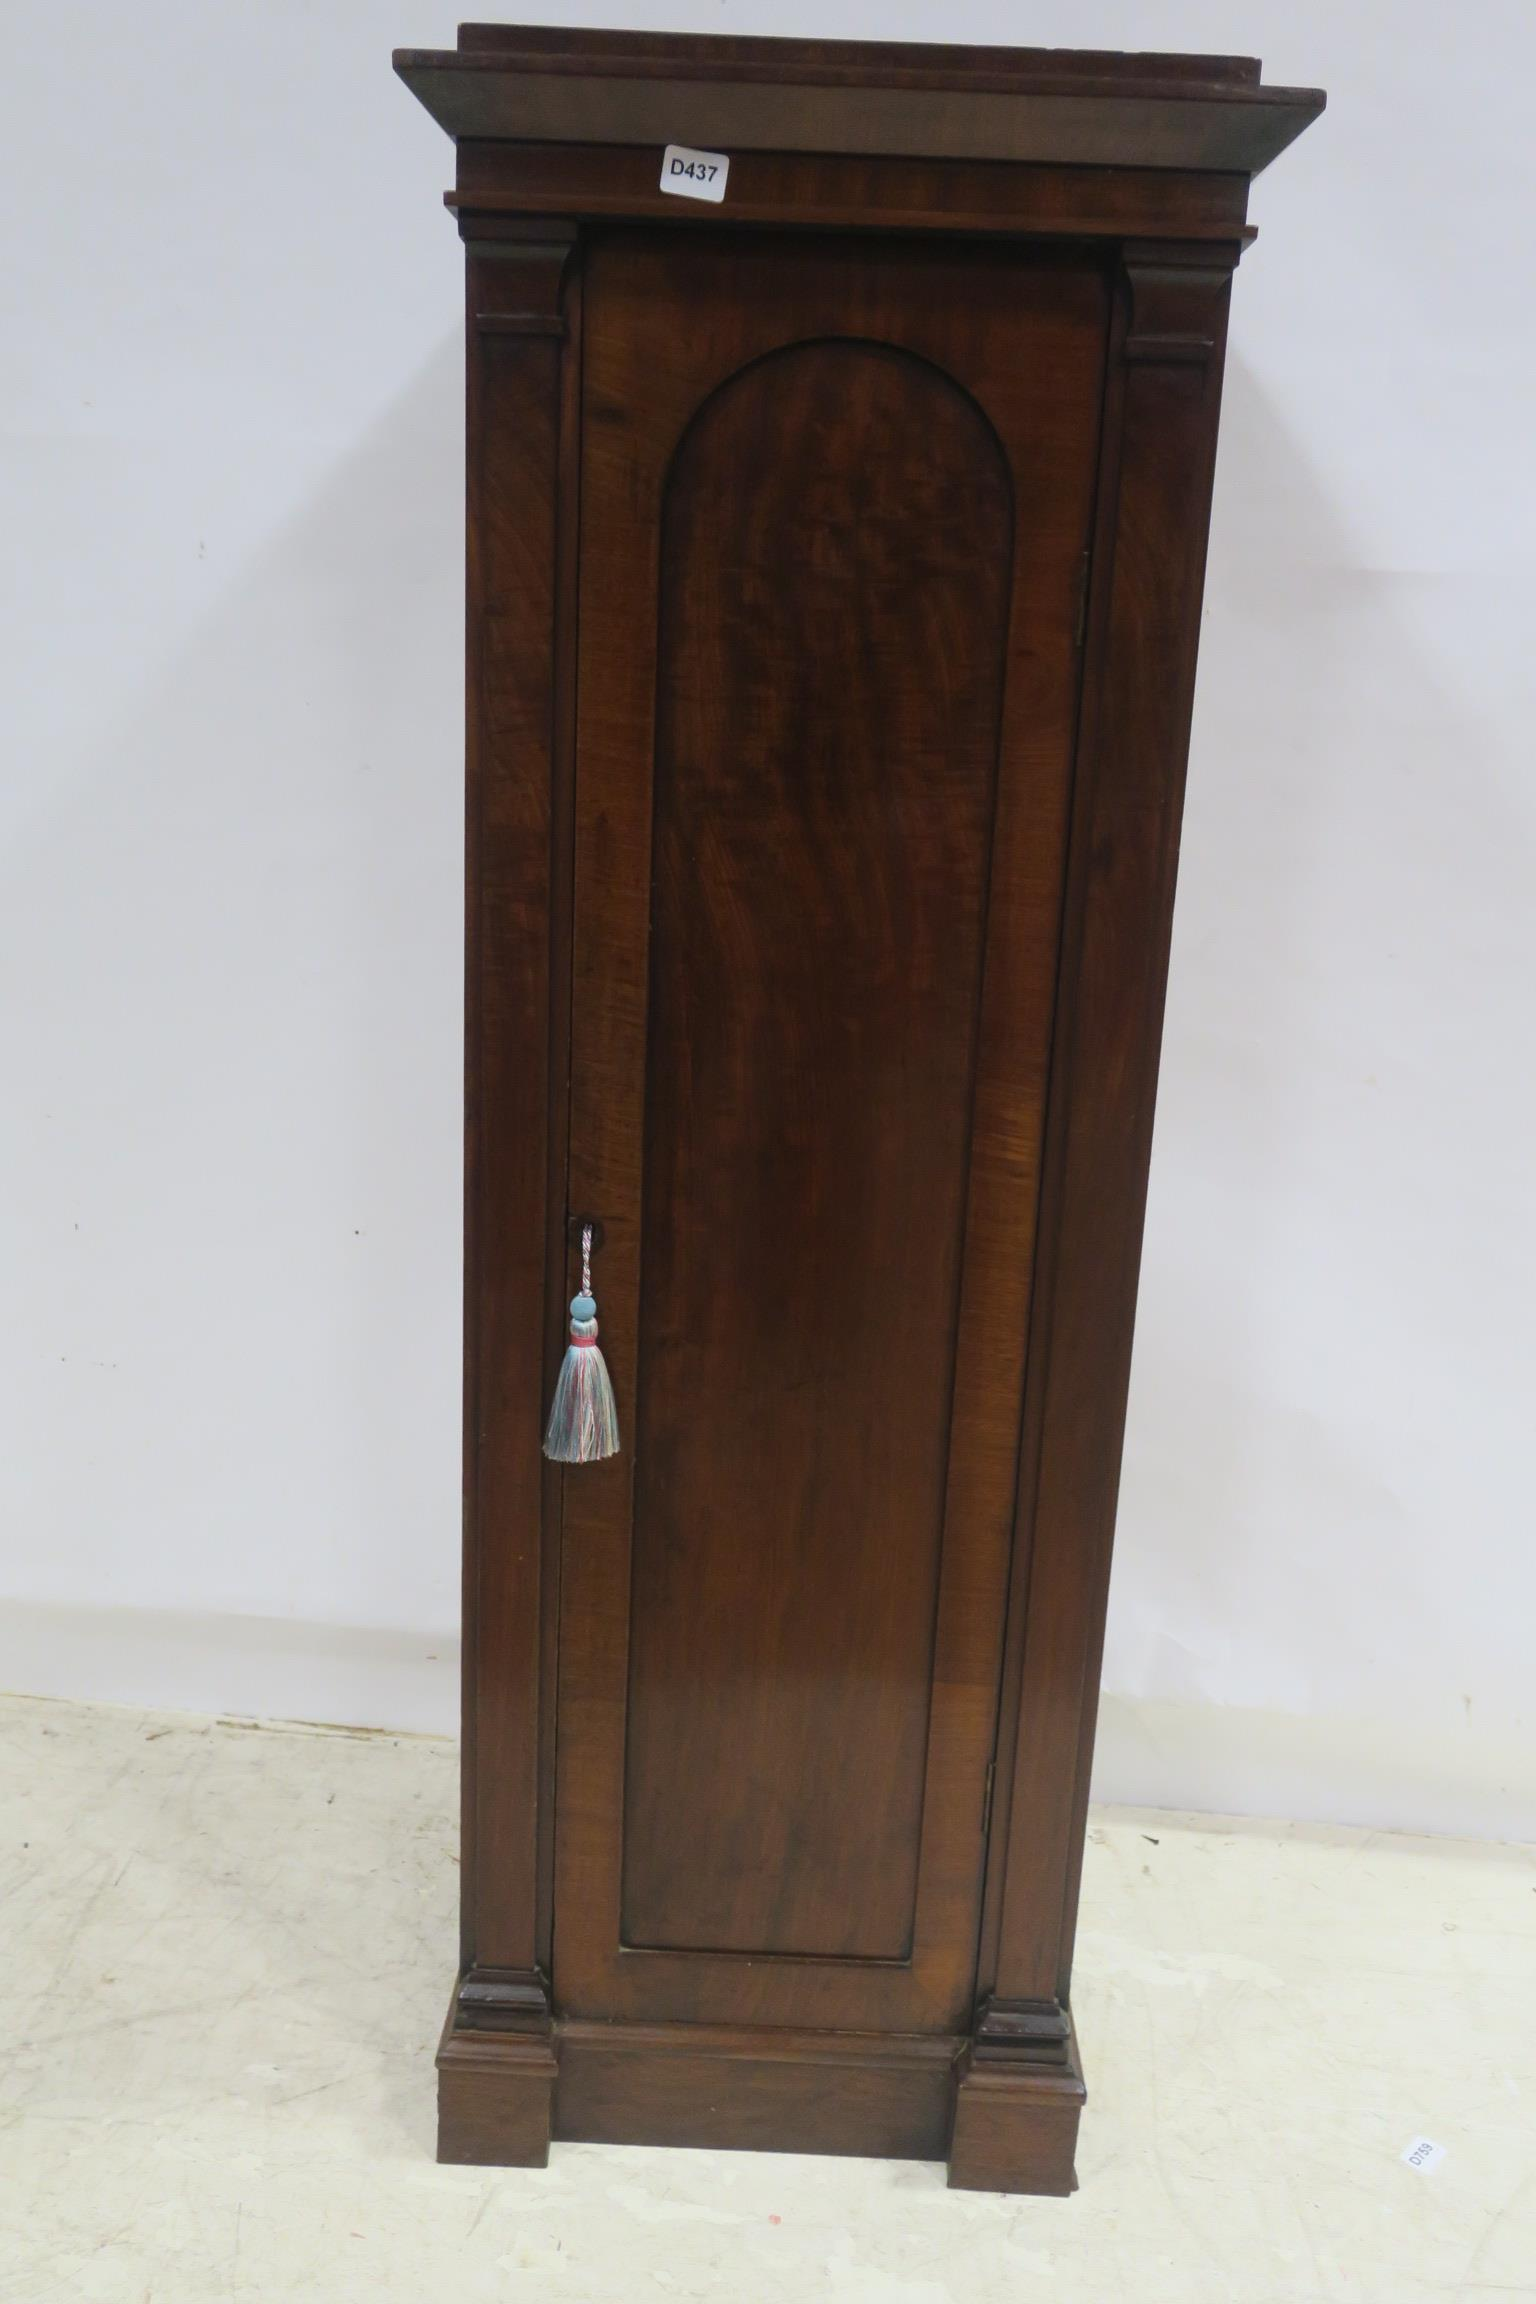 Lot 295 - A 19TH CENTURY MAHOGANY CUPBOARD the square stepped top above a rectangular arch panelled door